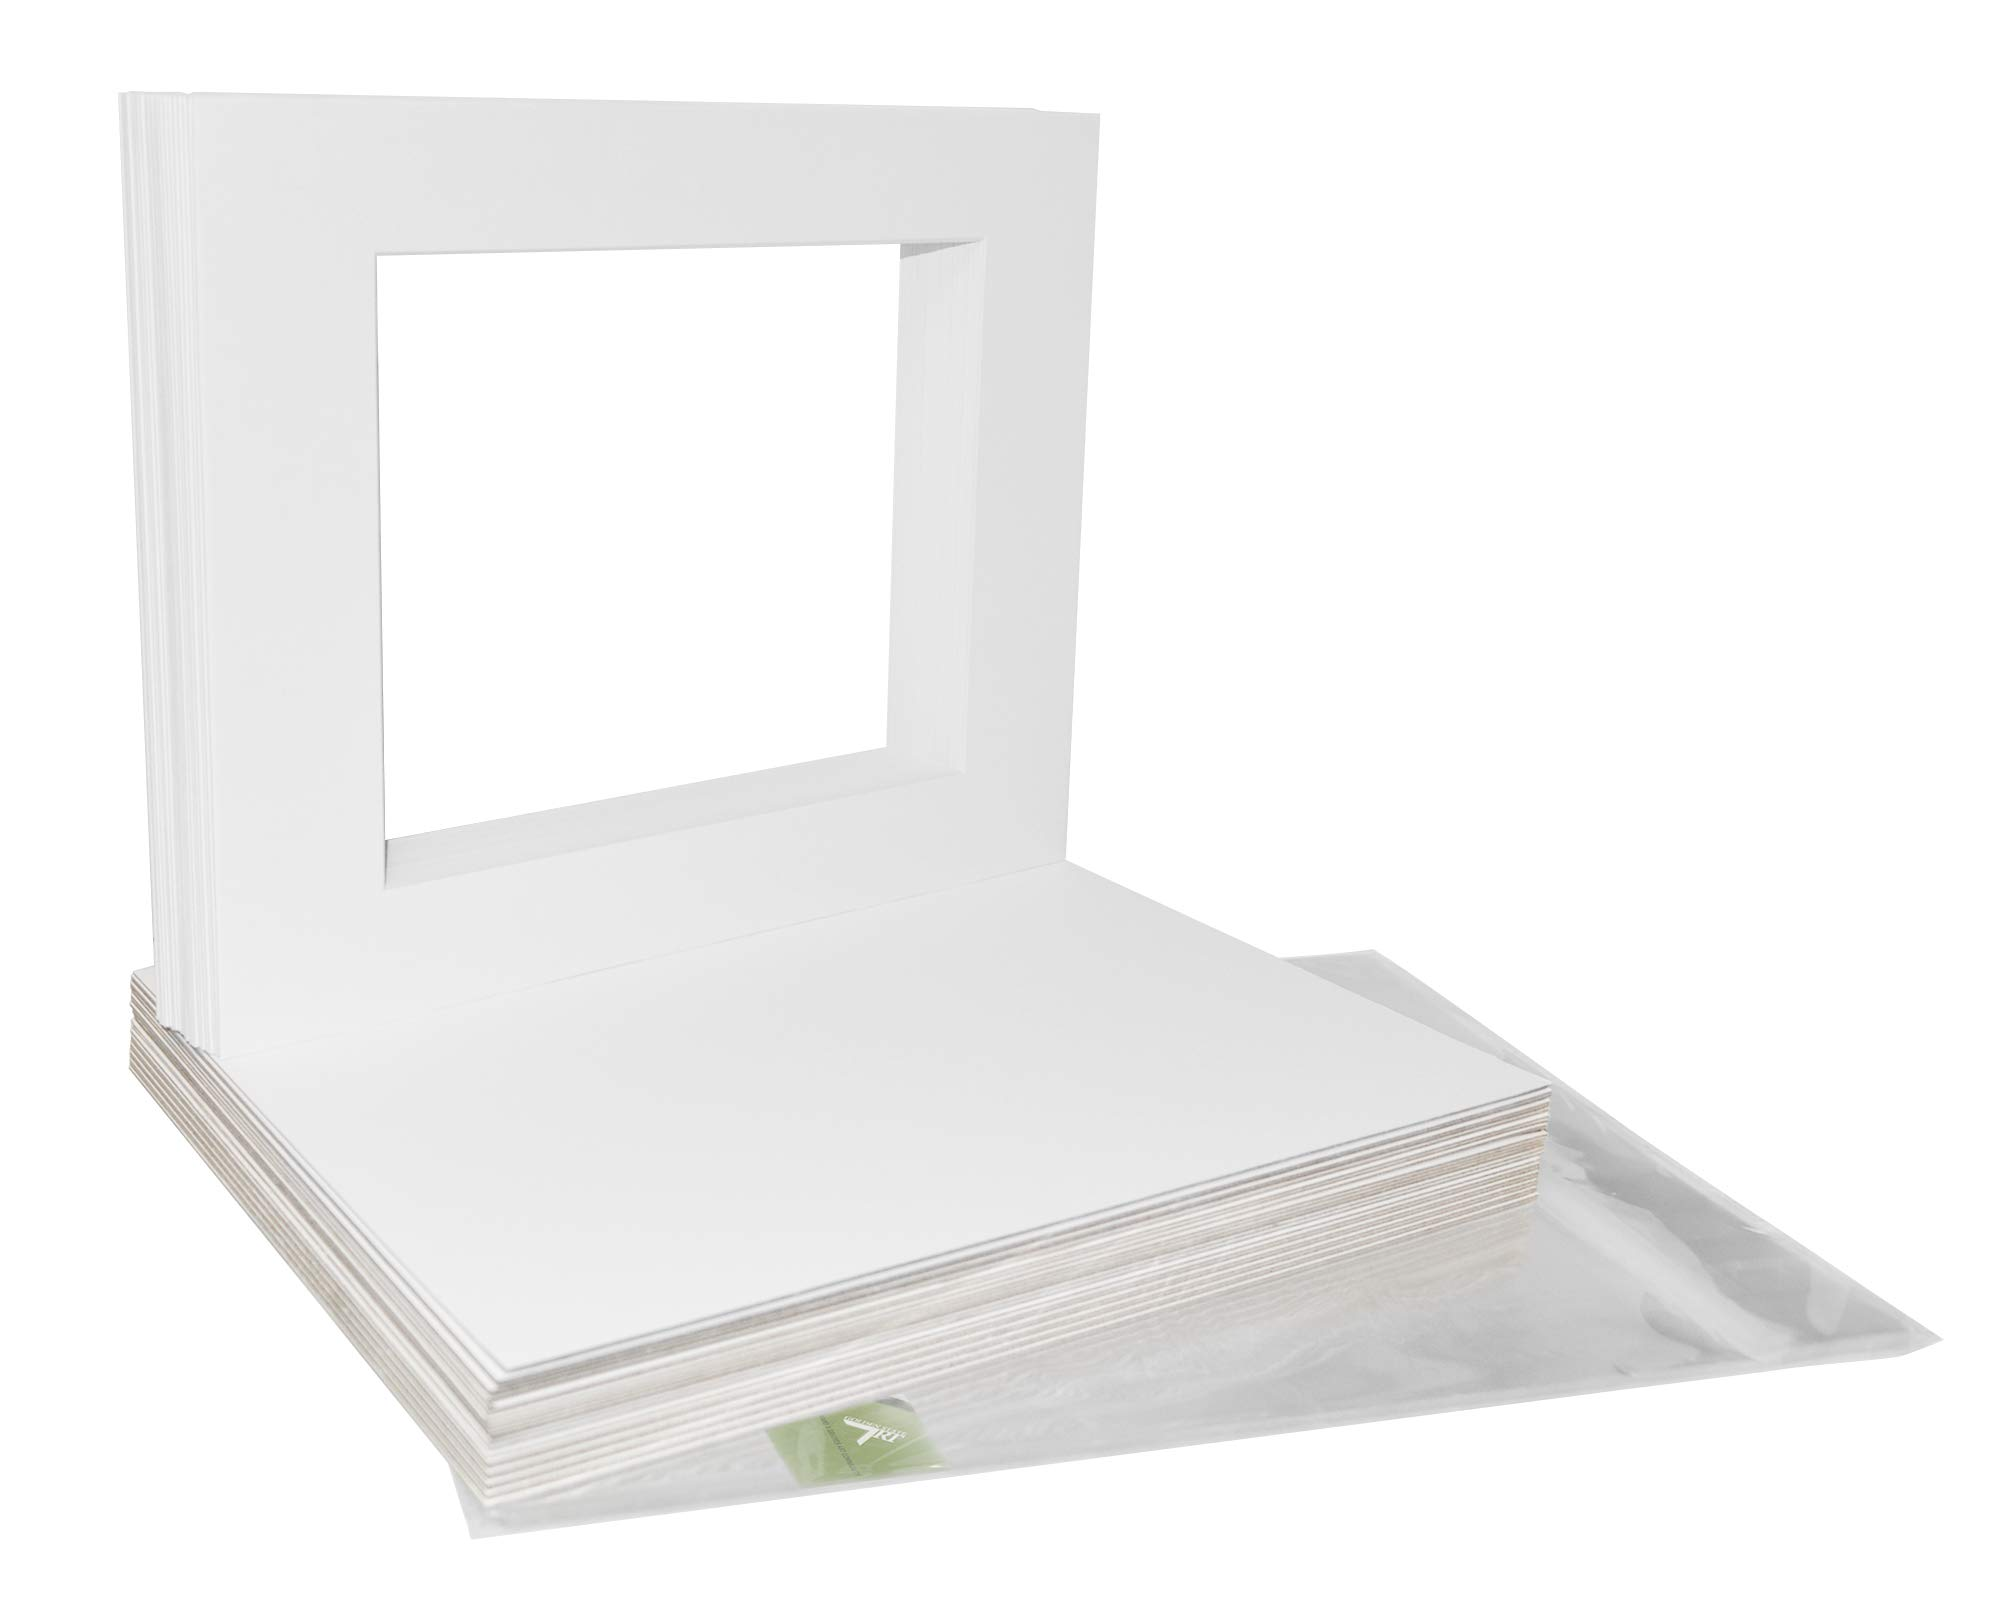 Pack of 25 11x14 WHITE Picture Mats Mattes with White Core Bevel Cut for 8x10 Photo + Backing + Bags by Golden State Art